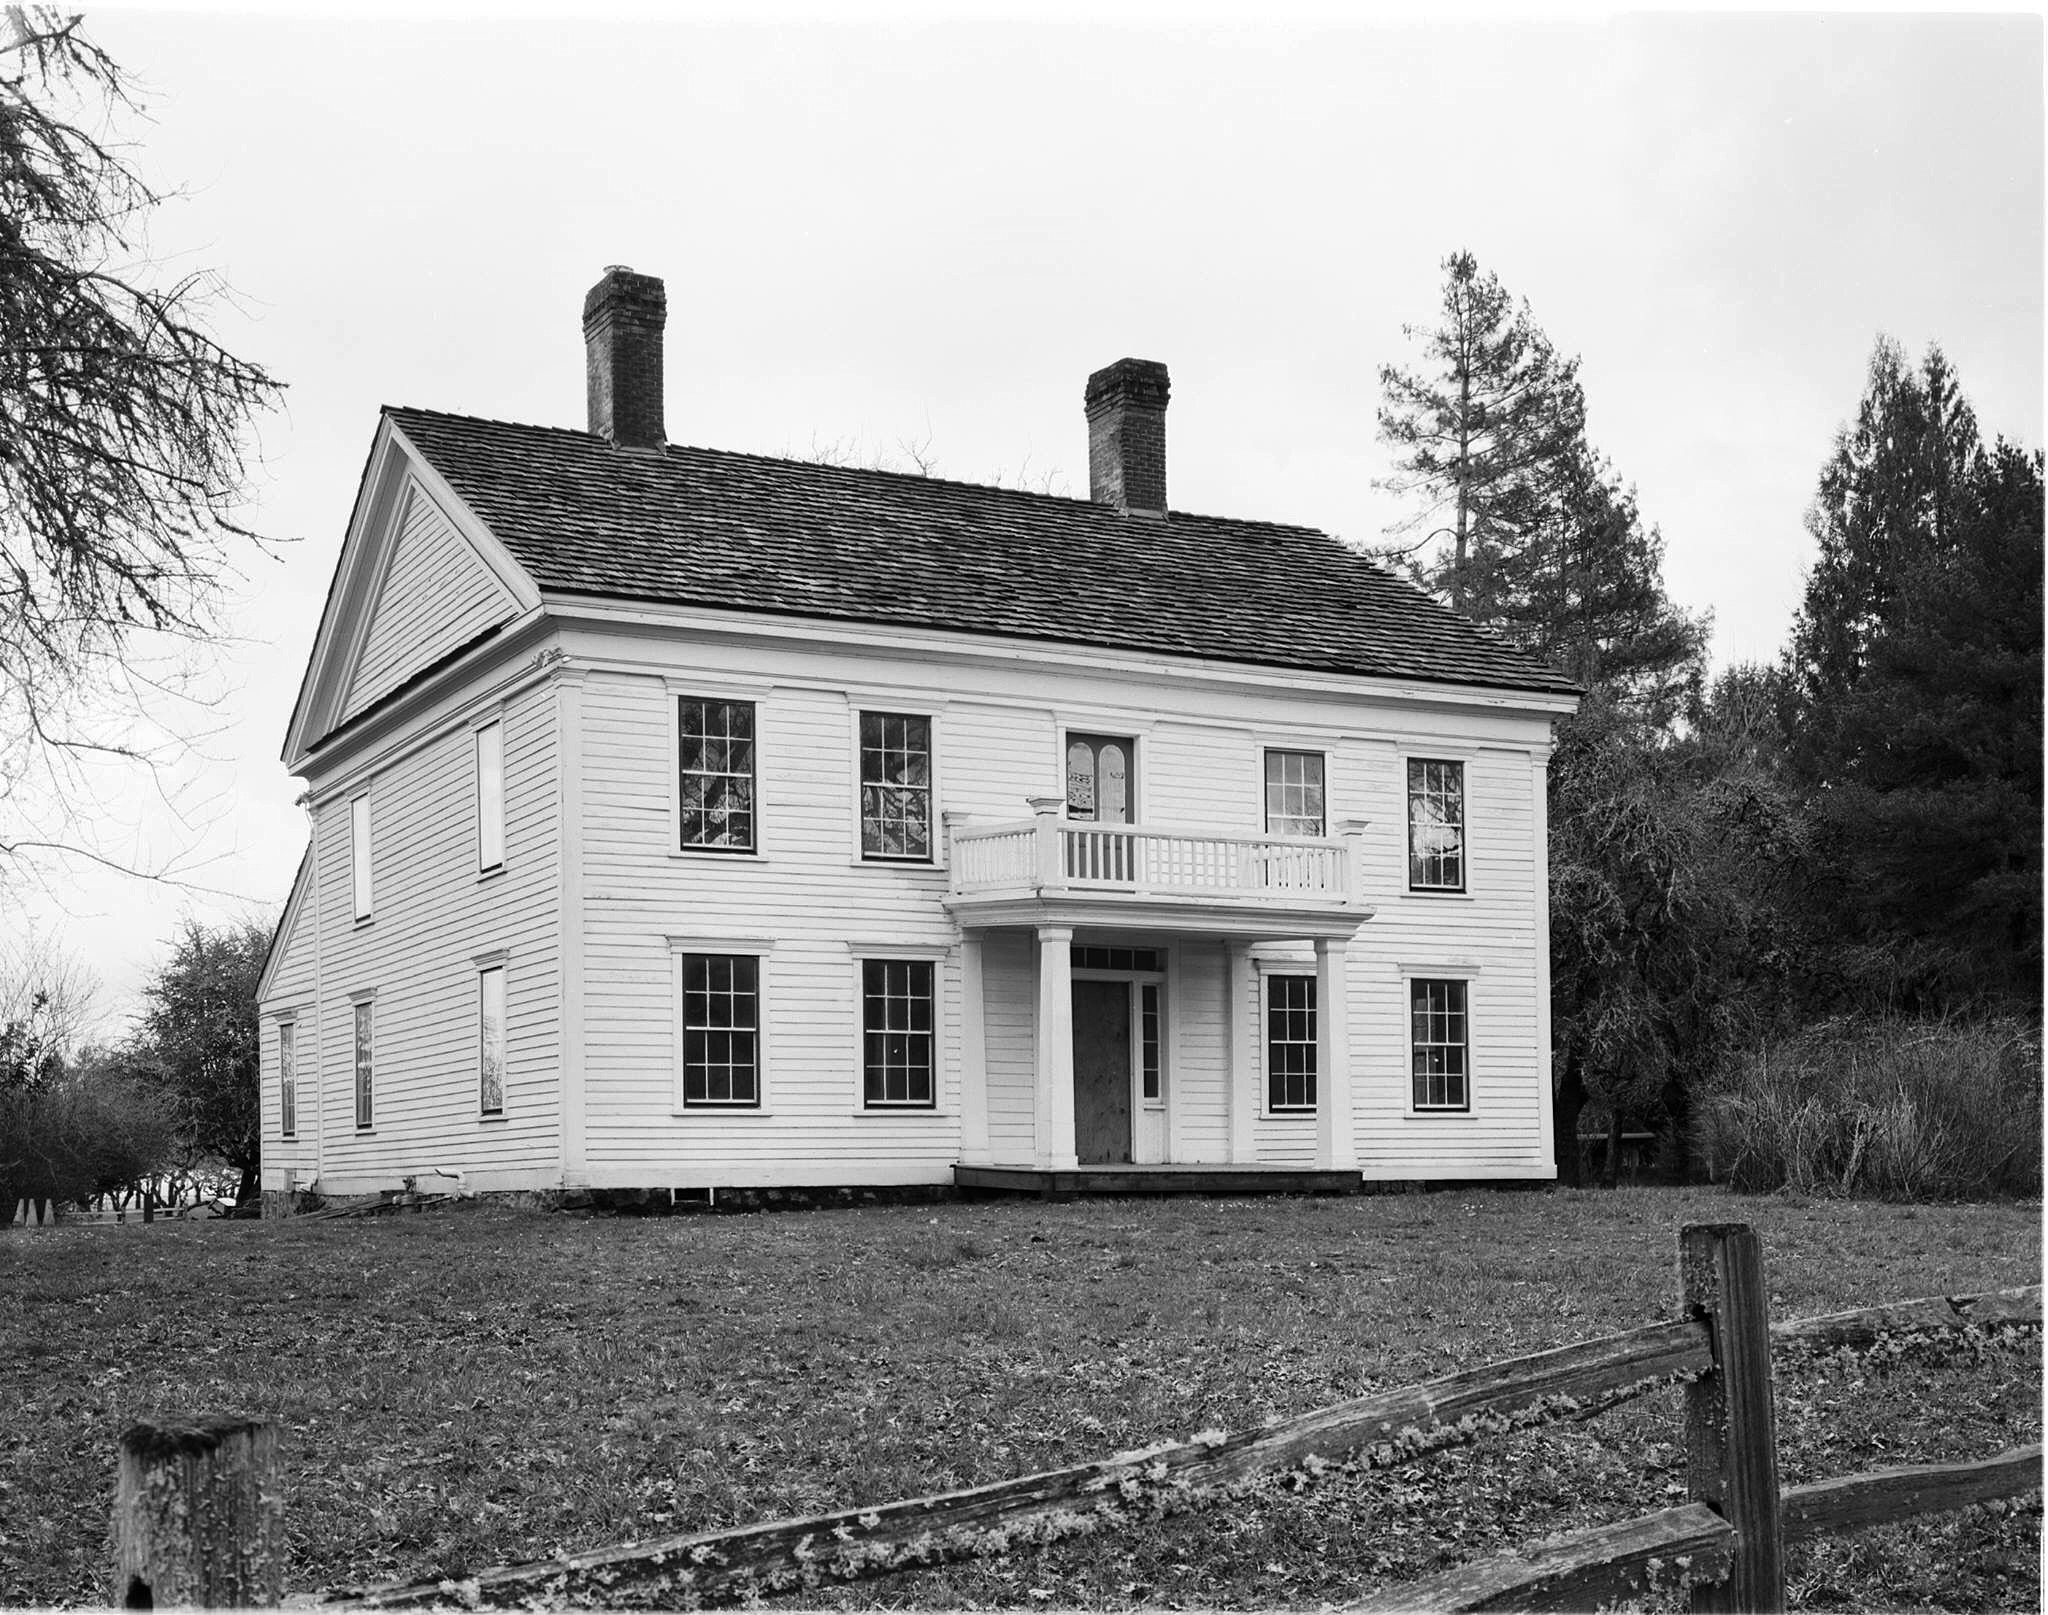 Bybee-Howell House (1856), Sauvie Island, OR (2016). This photograph is now in the Historic American Buildings Survey (HABS) in the Library of Congress (#HABS-OR-47-3).